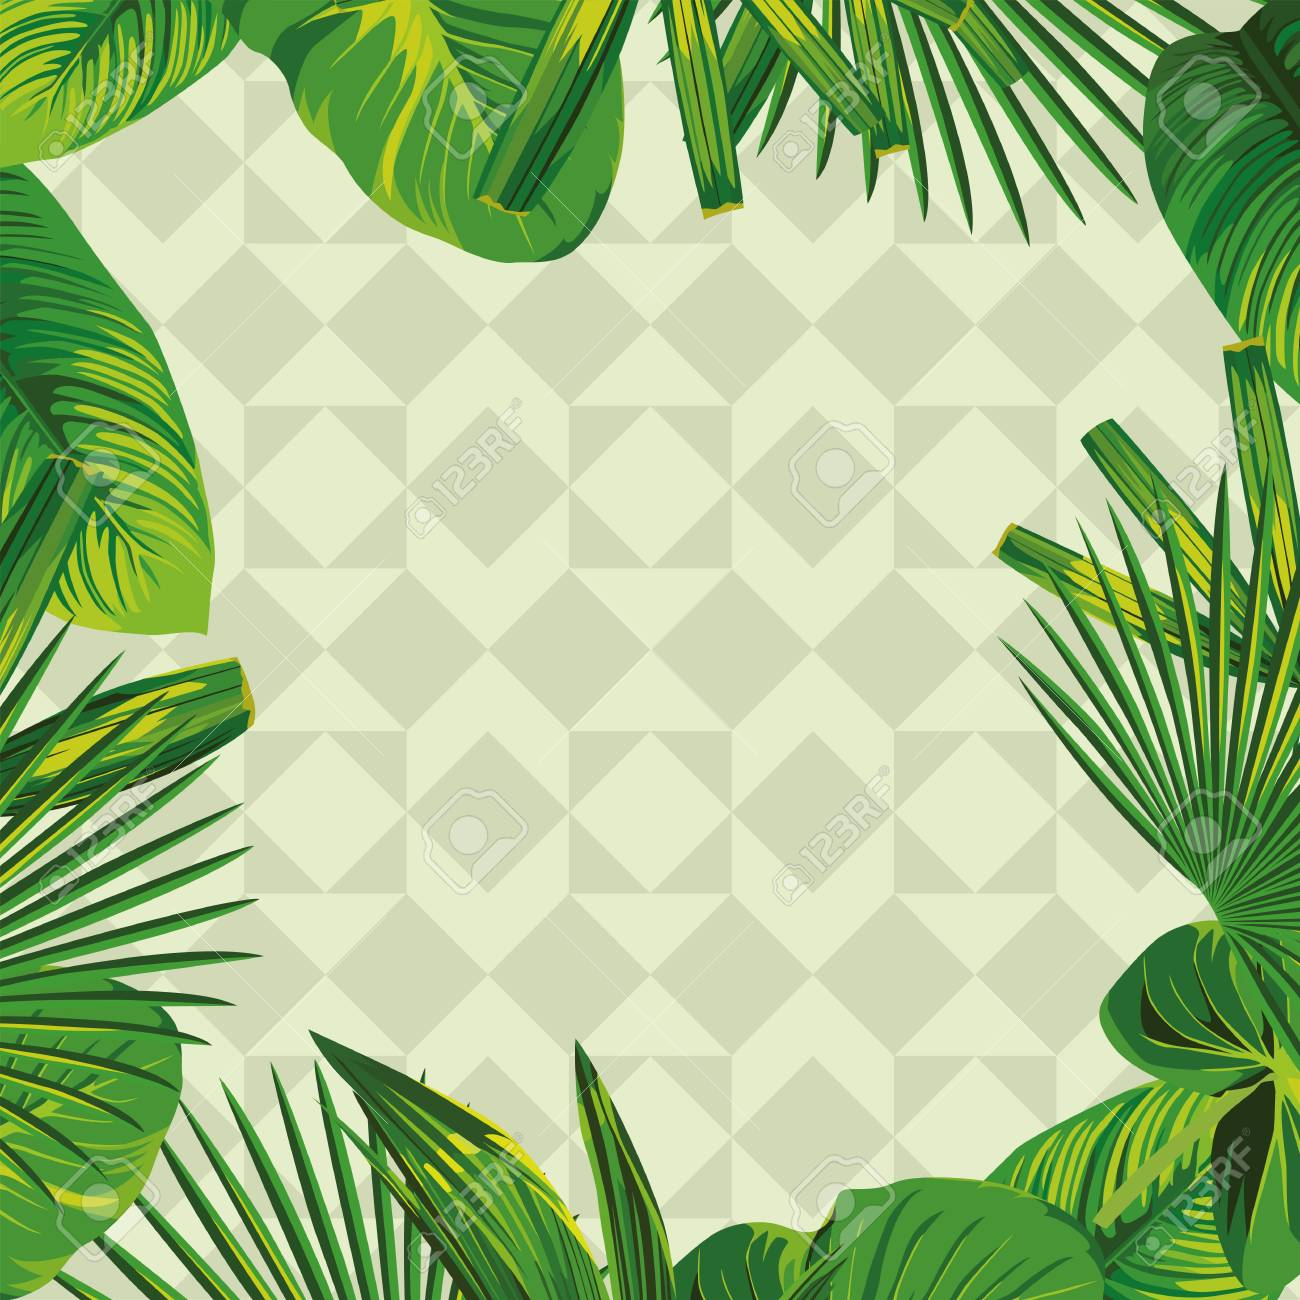 Frame Of Tropical Green Leaves In Olive Geometric Background Royalty Free Cliparts Vectors And Stock Illustration Image 69354536 Today's video is a tropical leaves green screen pack. frame of tropical green leaves in olive geometric background